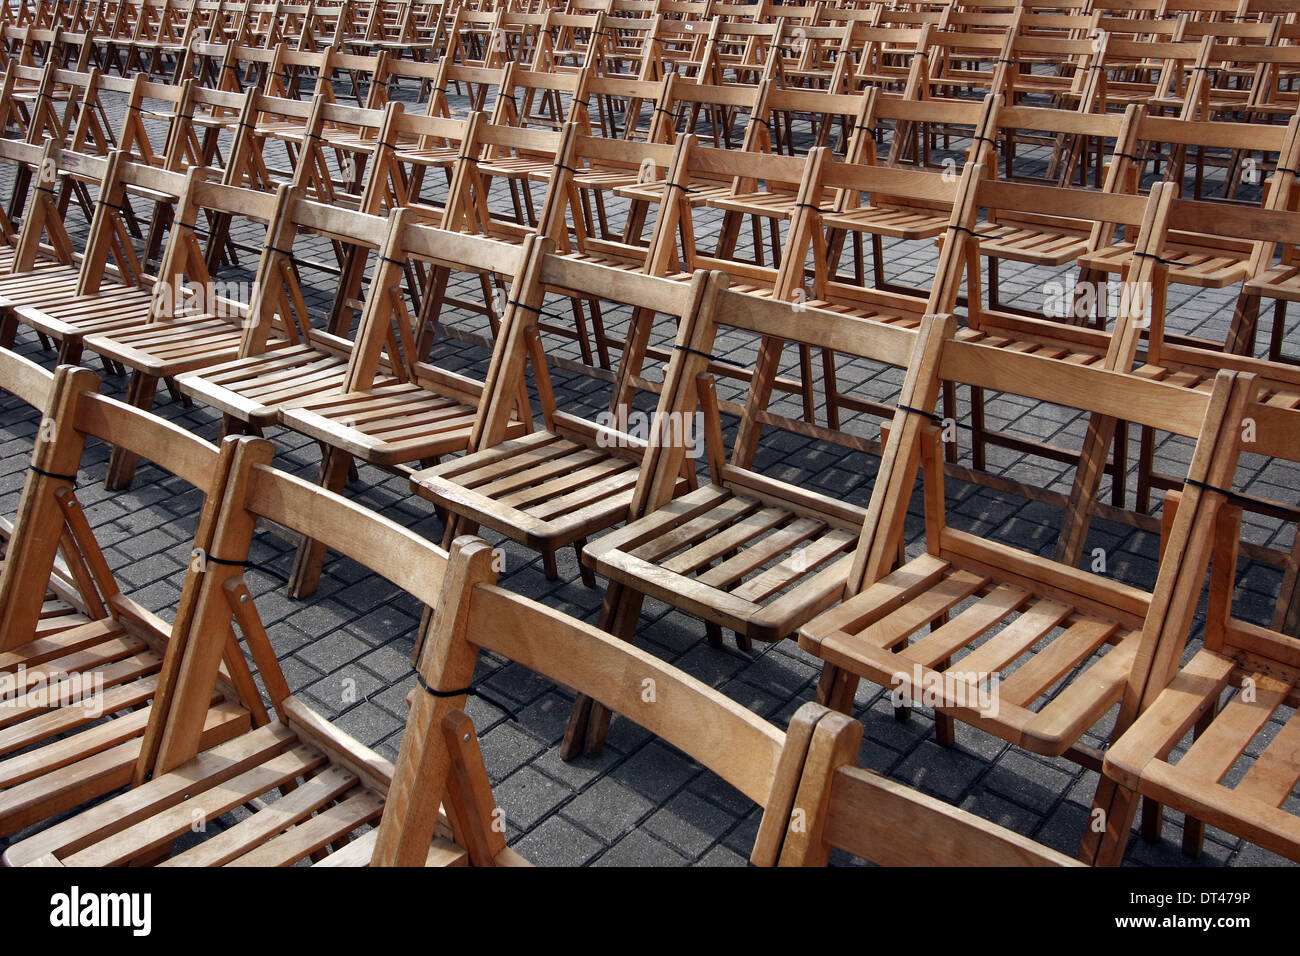 Wood chairs ready for the audience before a show - Stock Image